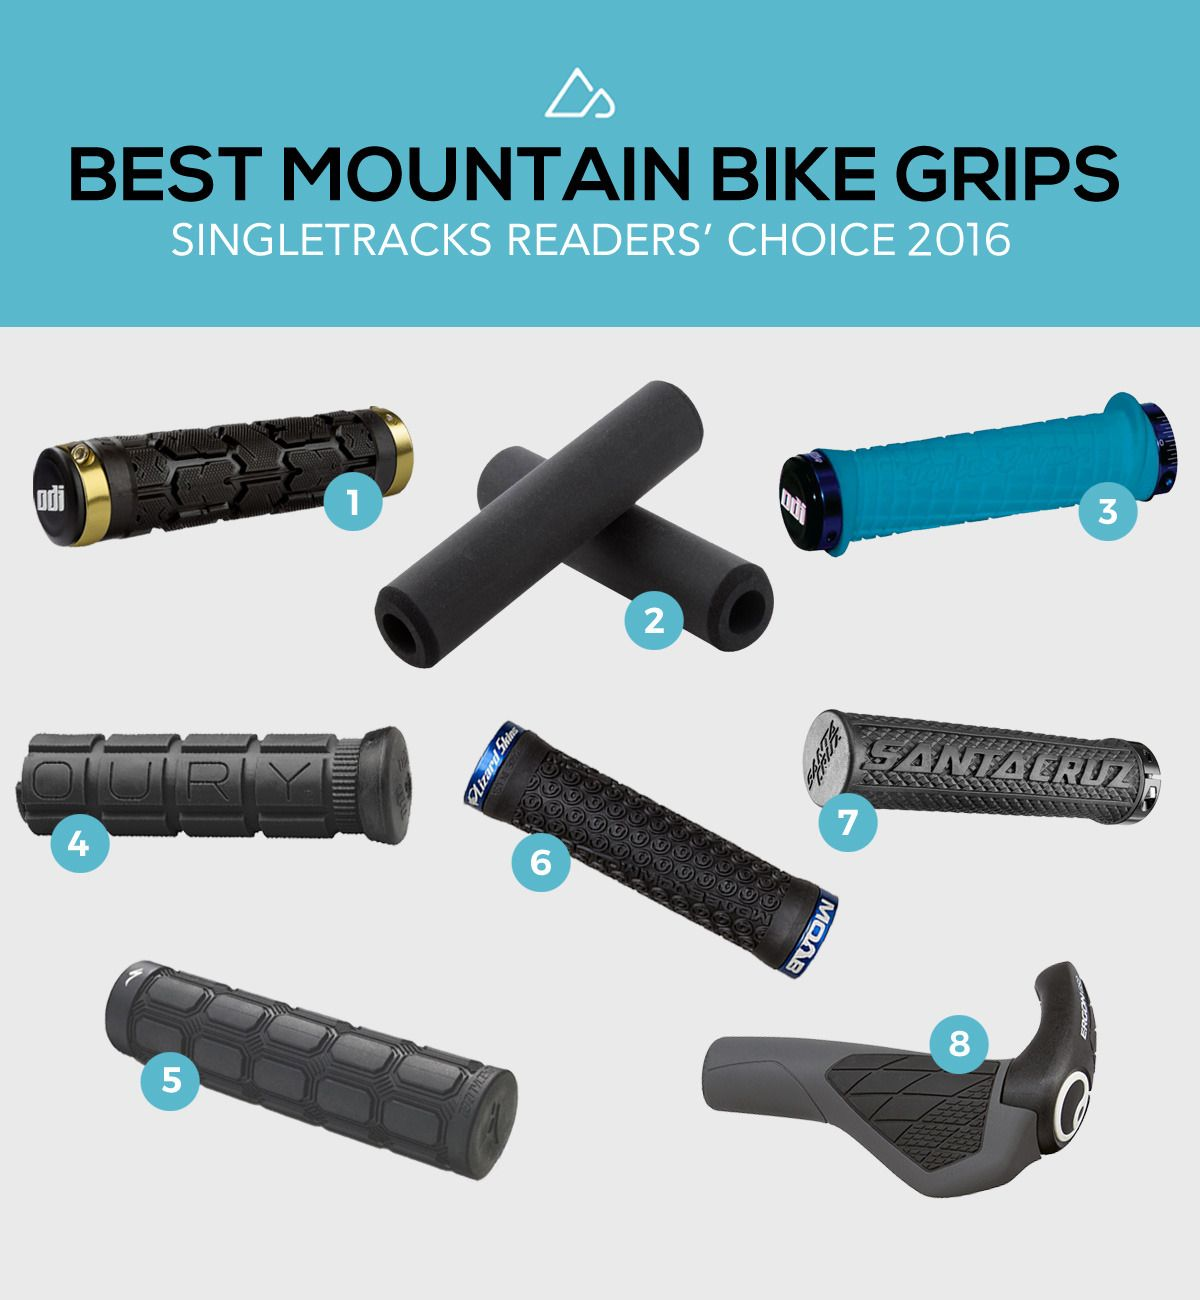 Get A Grip The Best Mountain Bike Grips According To Our Readers Singletracks Mountain Bike News Mountain Biking Gear Mountain Biking Best Mountain Bikes